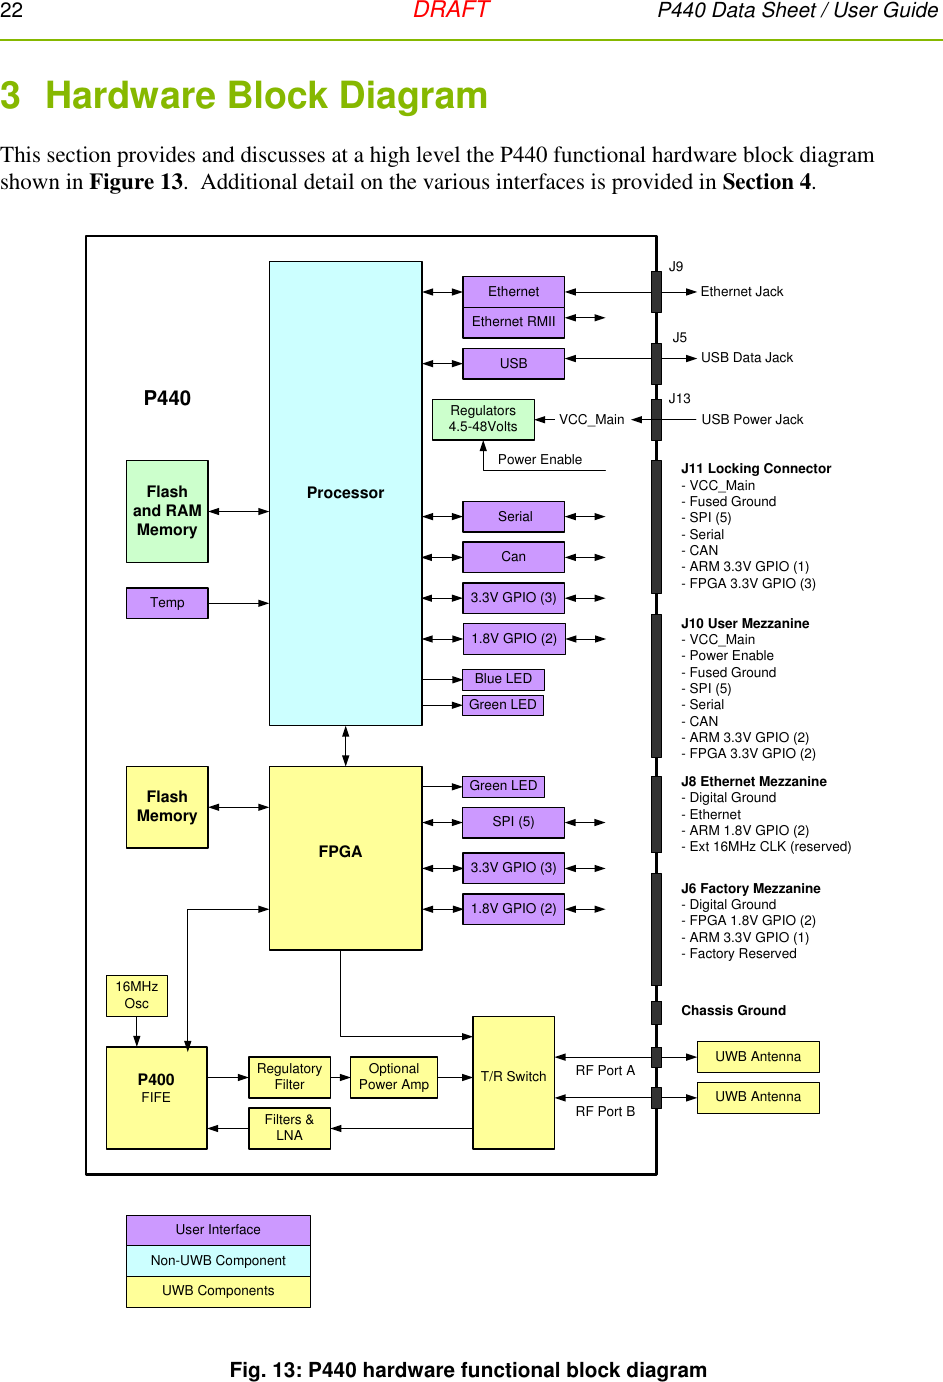 Tdc Acquisition P440 A Ultra Wideband Uwb Radio Transceiver User Hardware Block Diagram 22 Draft Data Sheet Guide 3 This Section Provides And